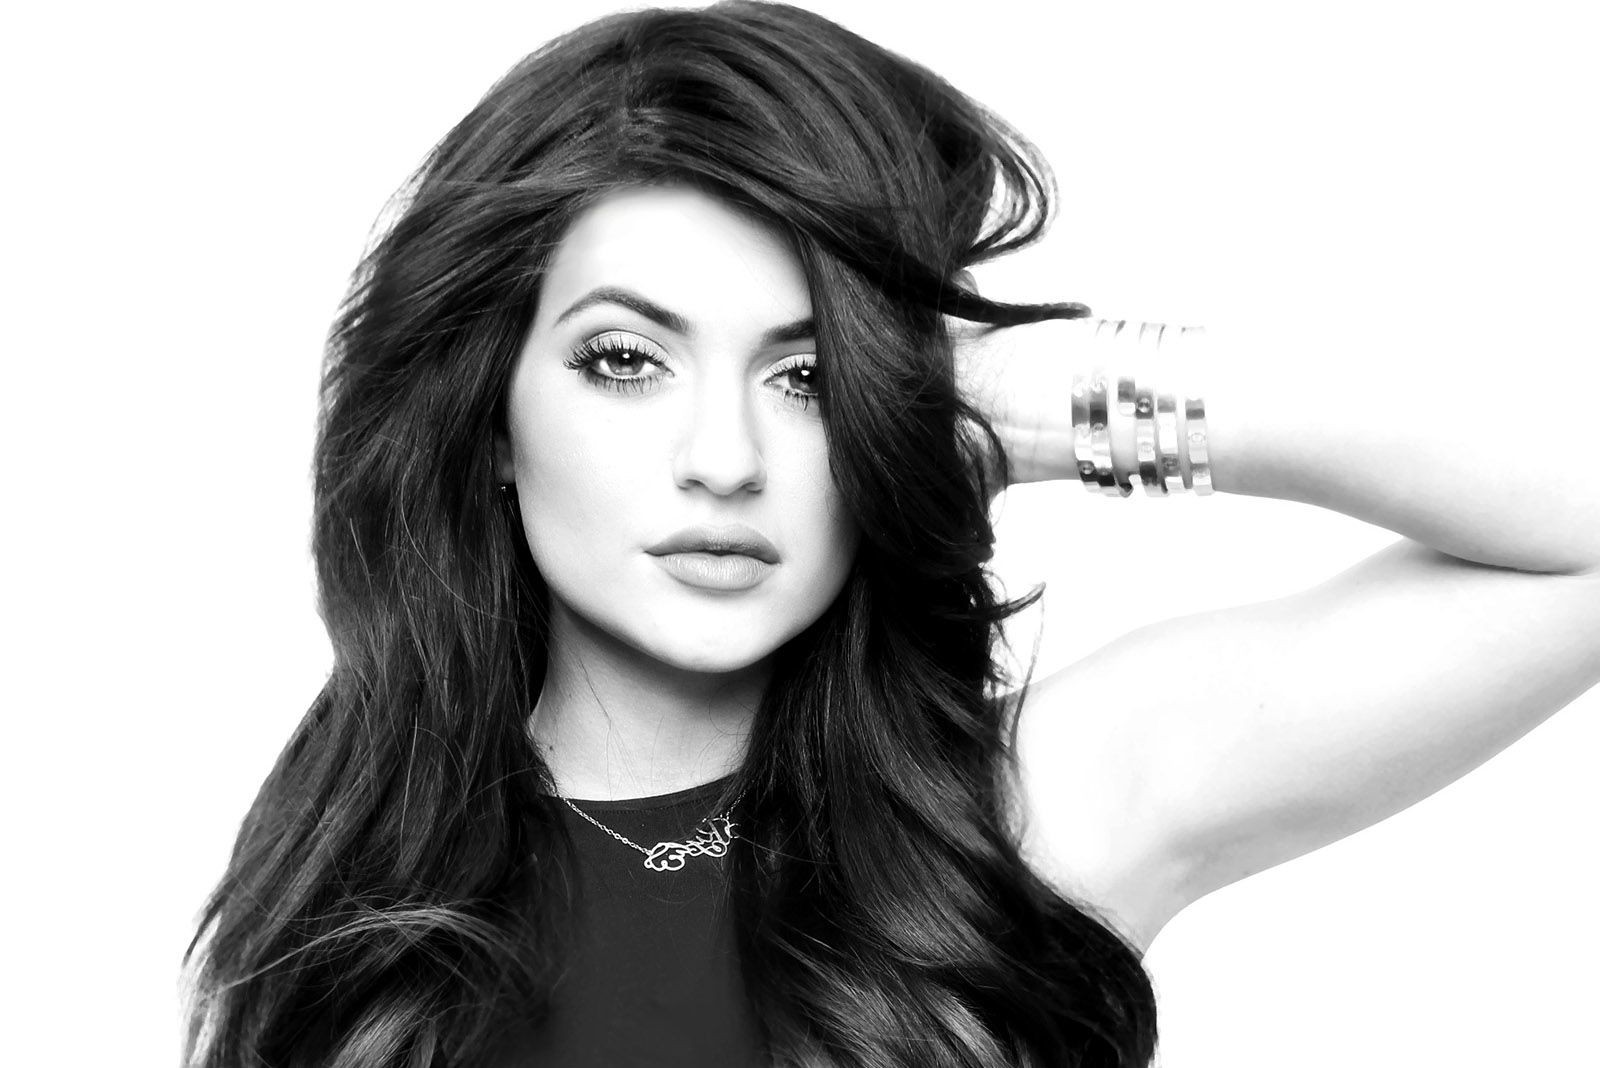 Makeup Iphone Wallpaper 25 Kylie Jenner Wallpapers Hd High Quality